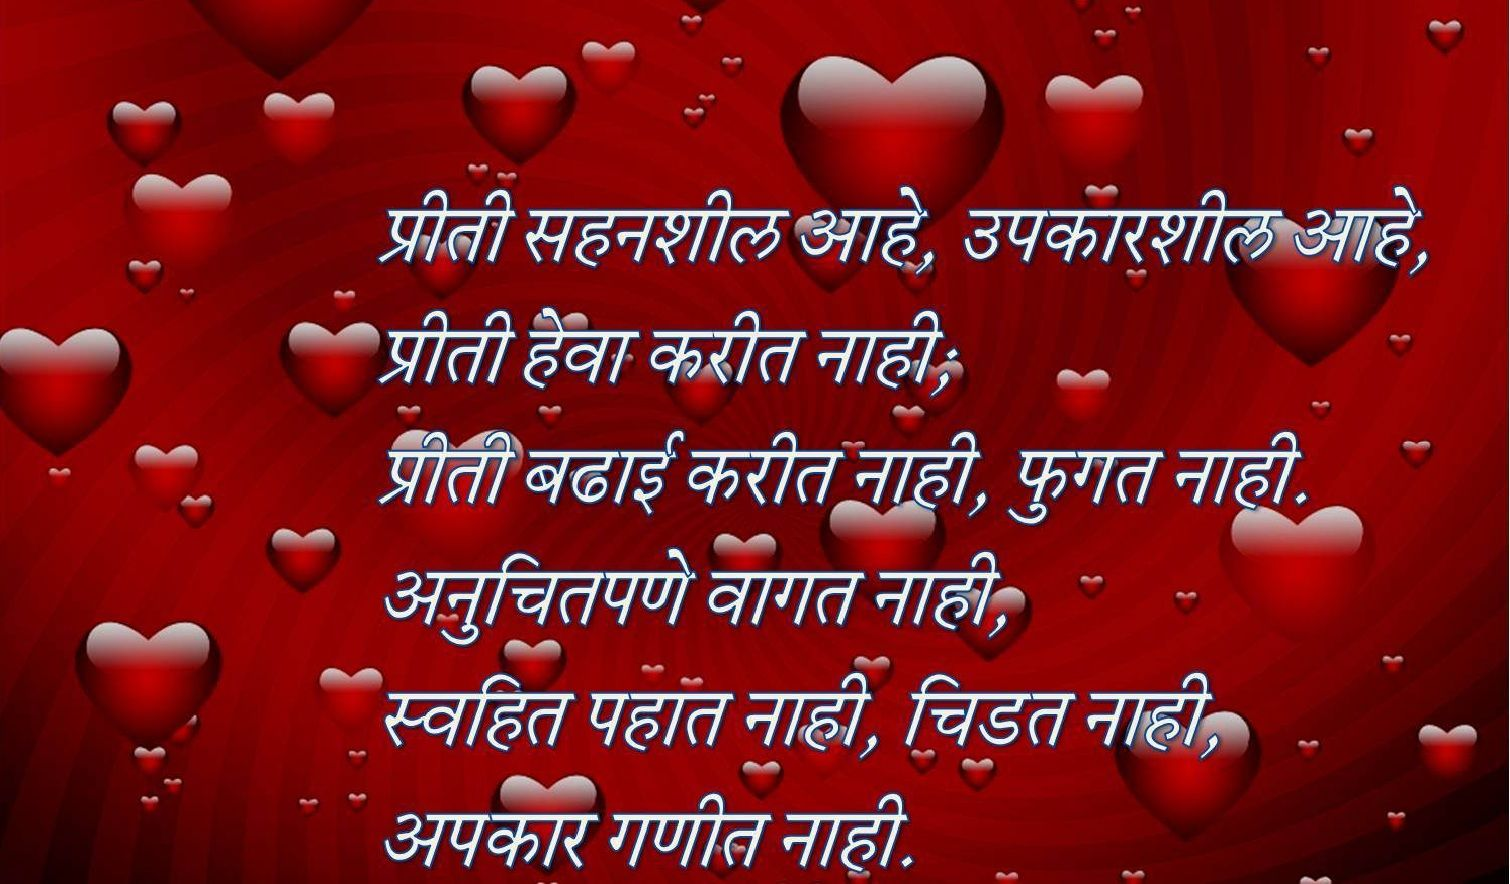 Valentines Day Wishes In Marathi 2018 Valentine Day Special